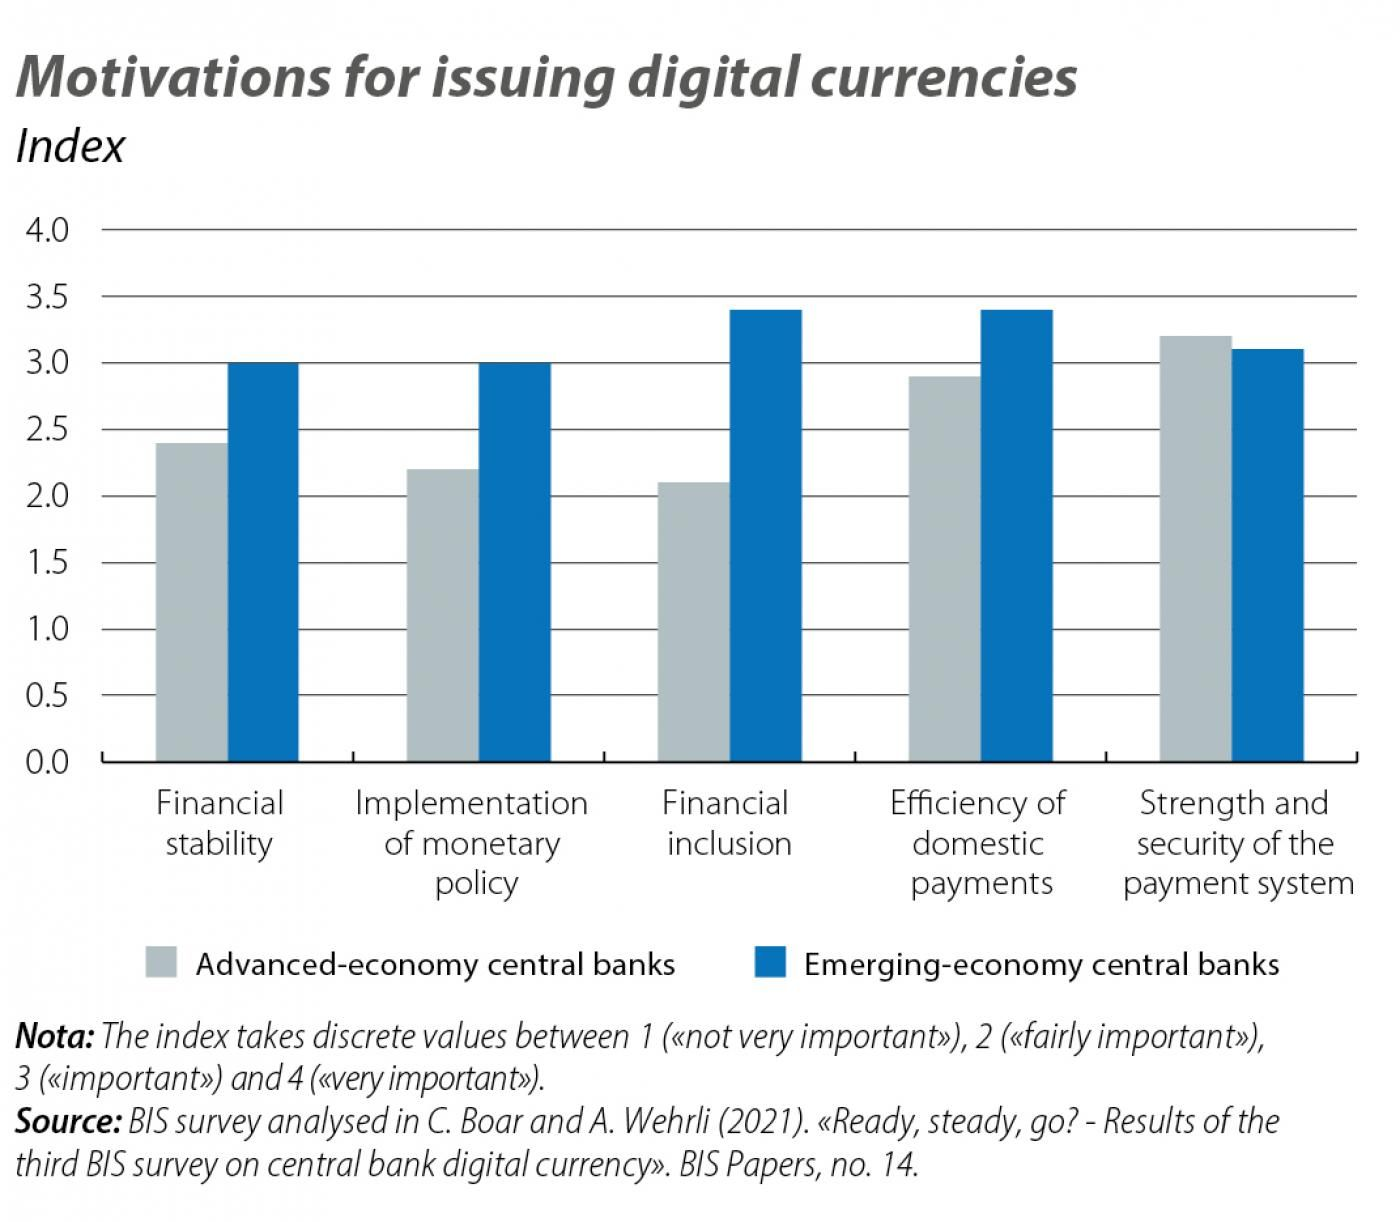 Motivations for issuing digital currencies